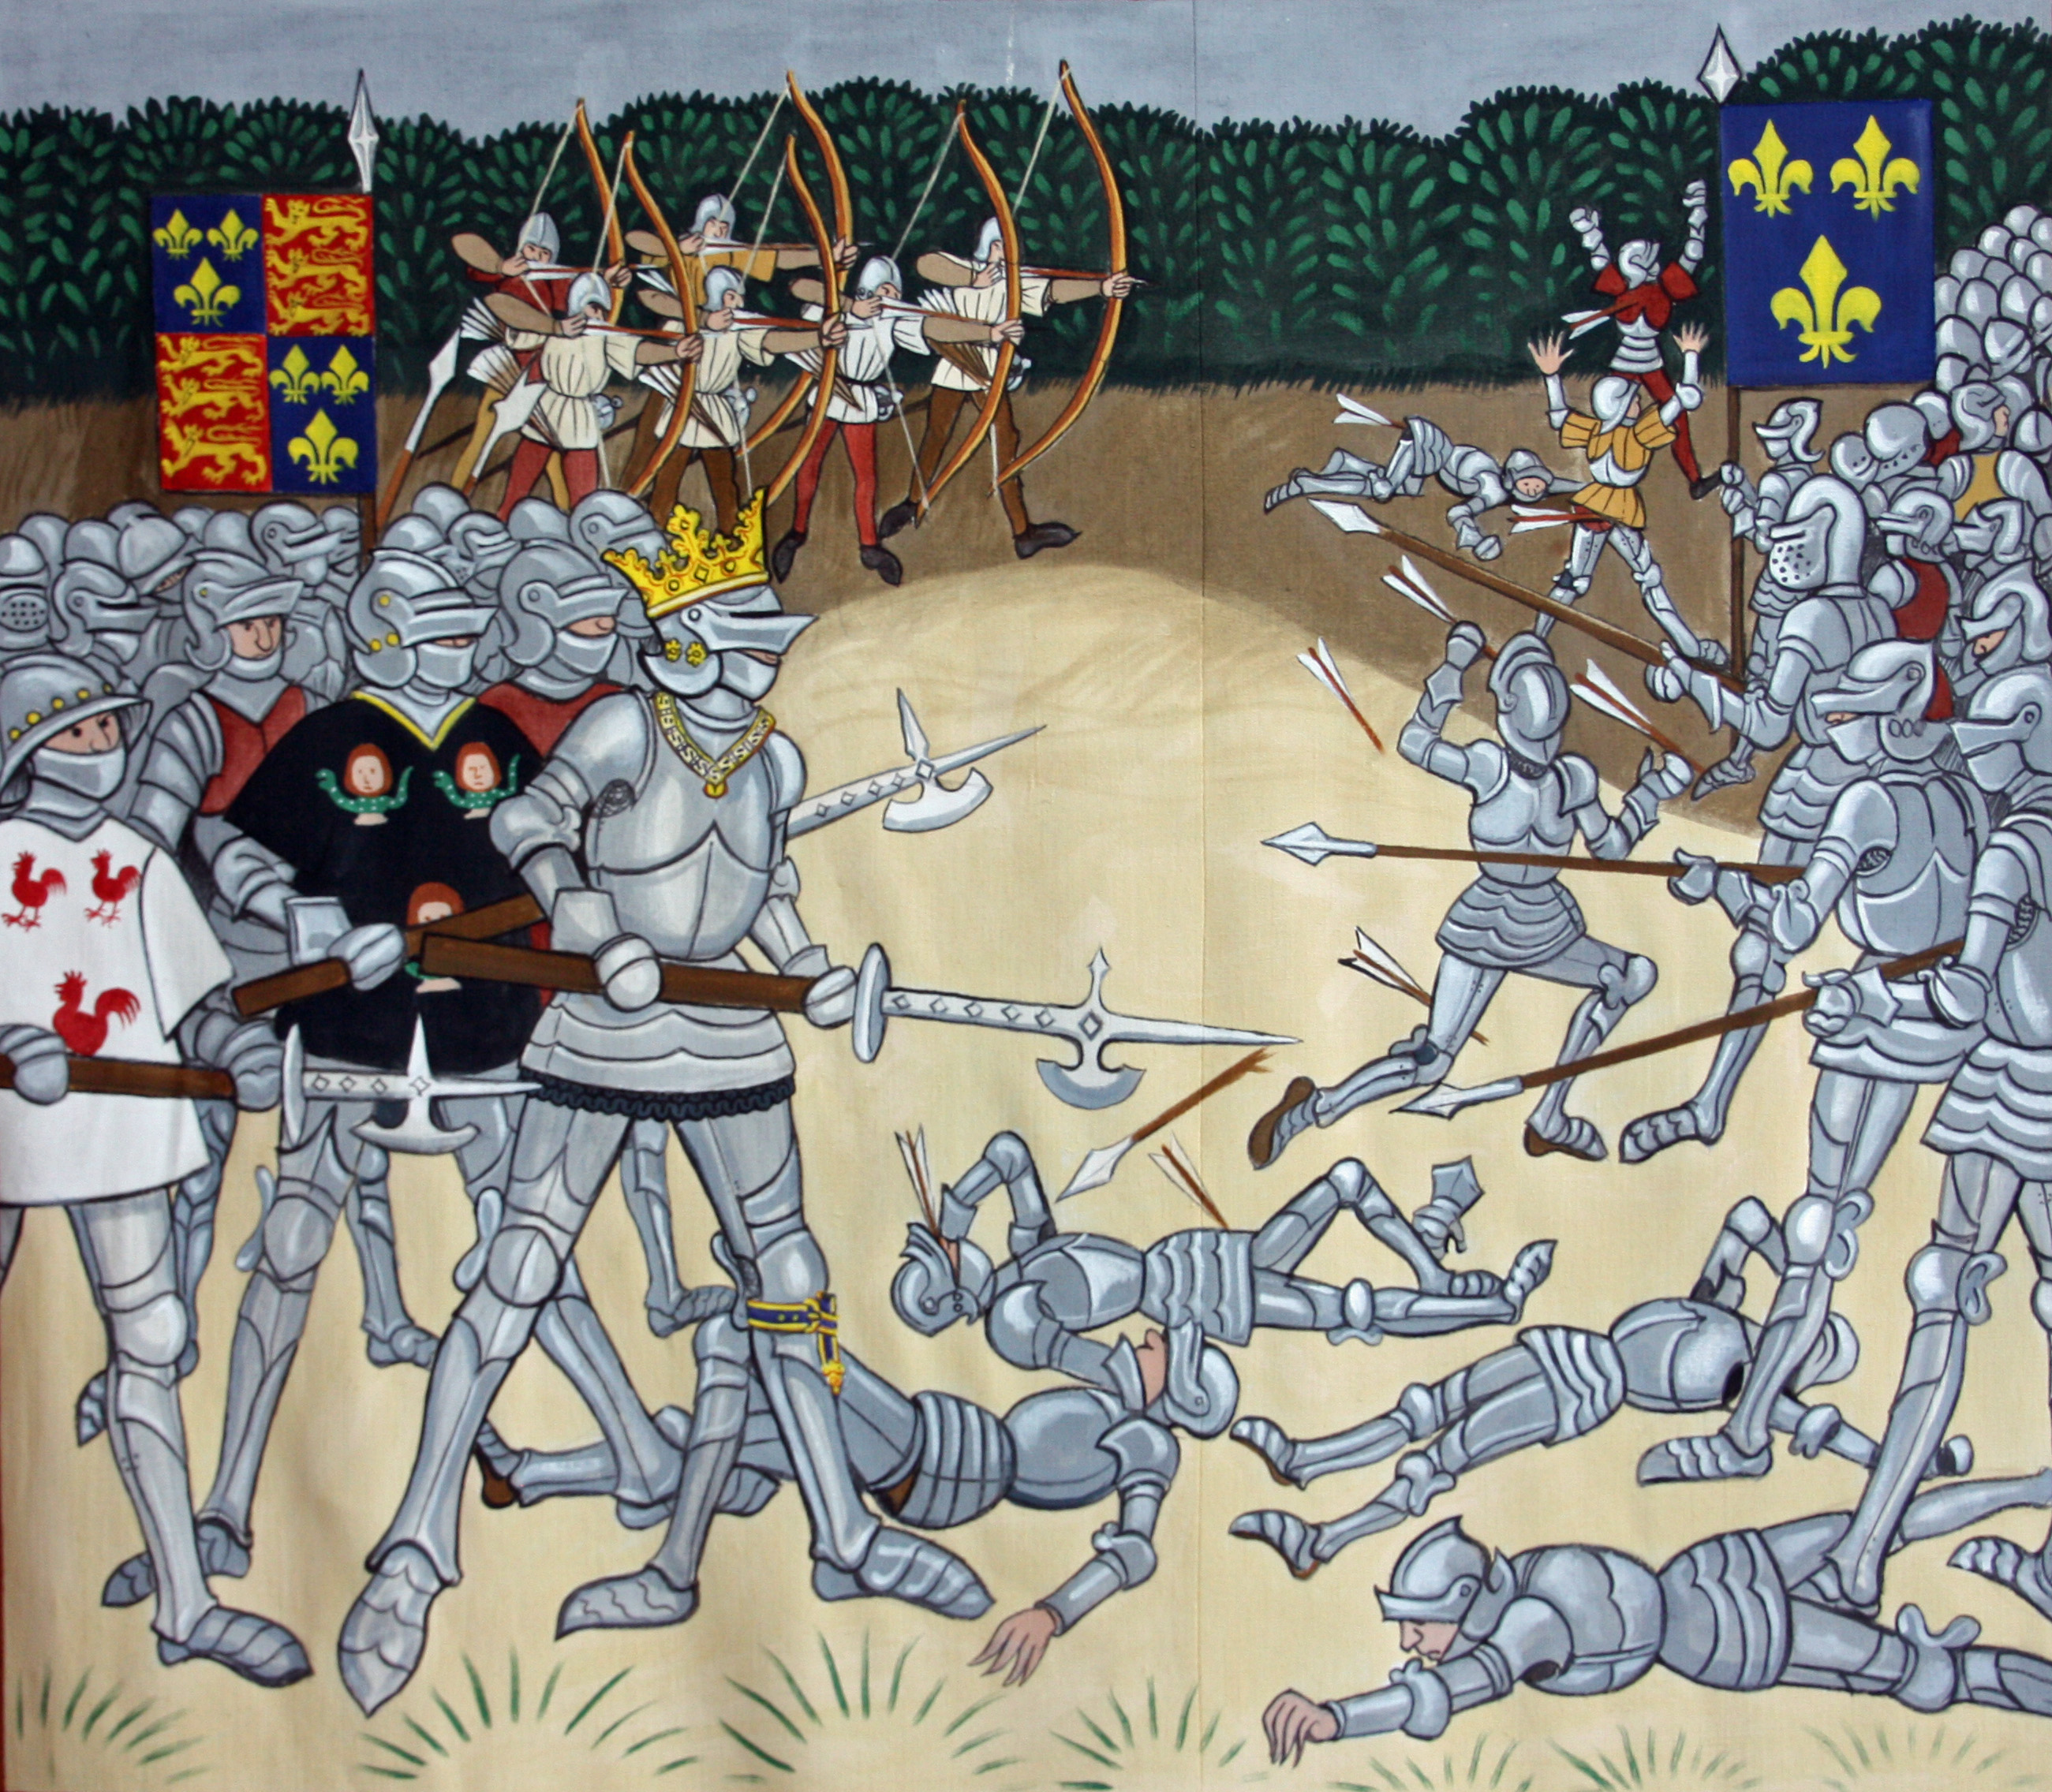 Battle Scene edited by Simon Leach